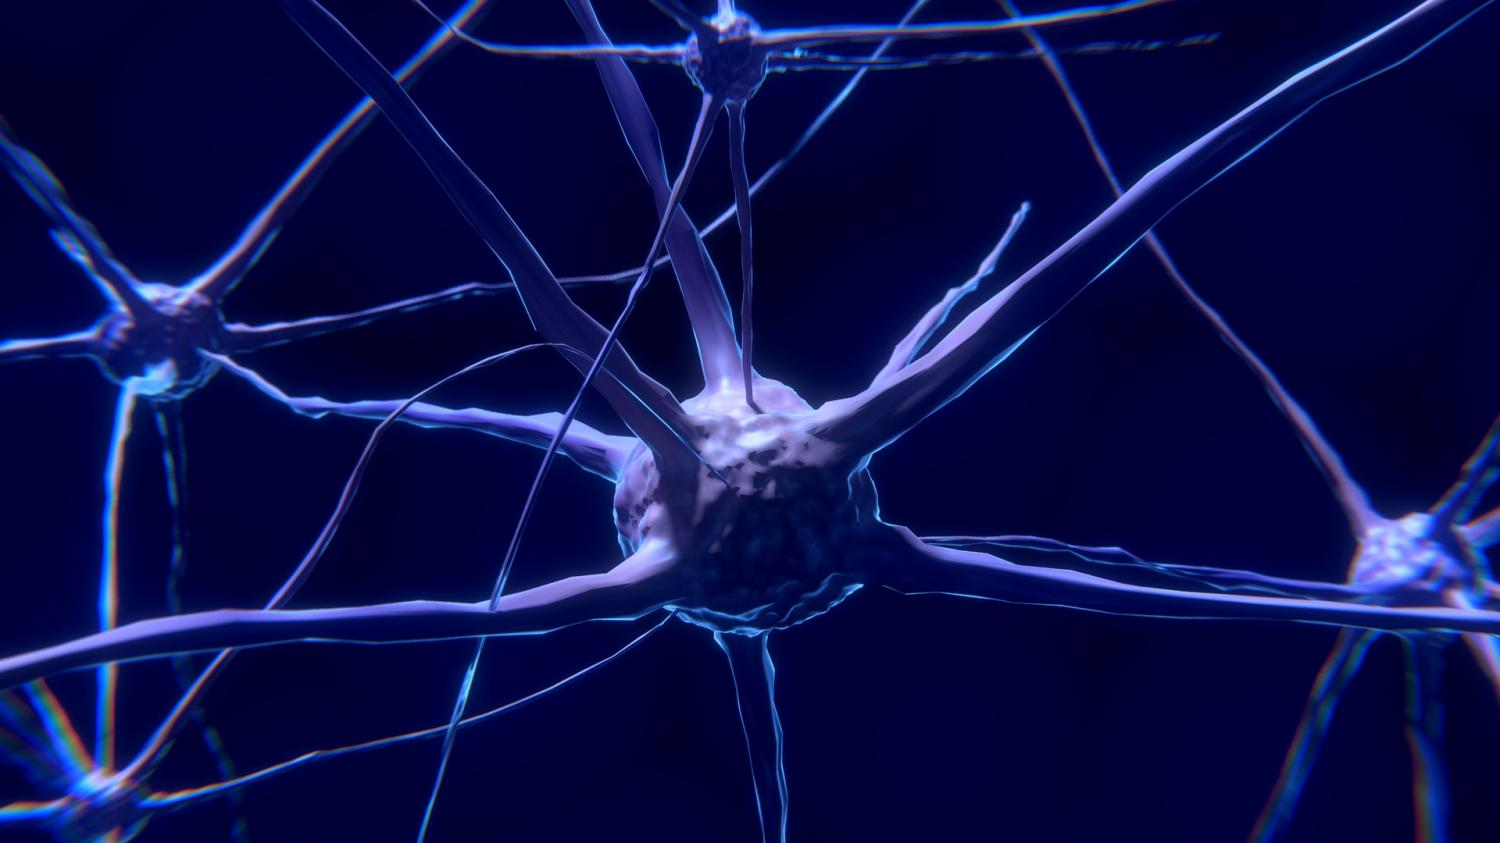 Research Gives New Insight Into The Evolution Of The Nervous System